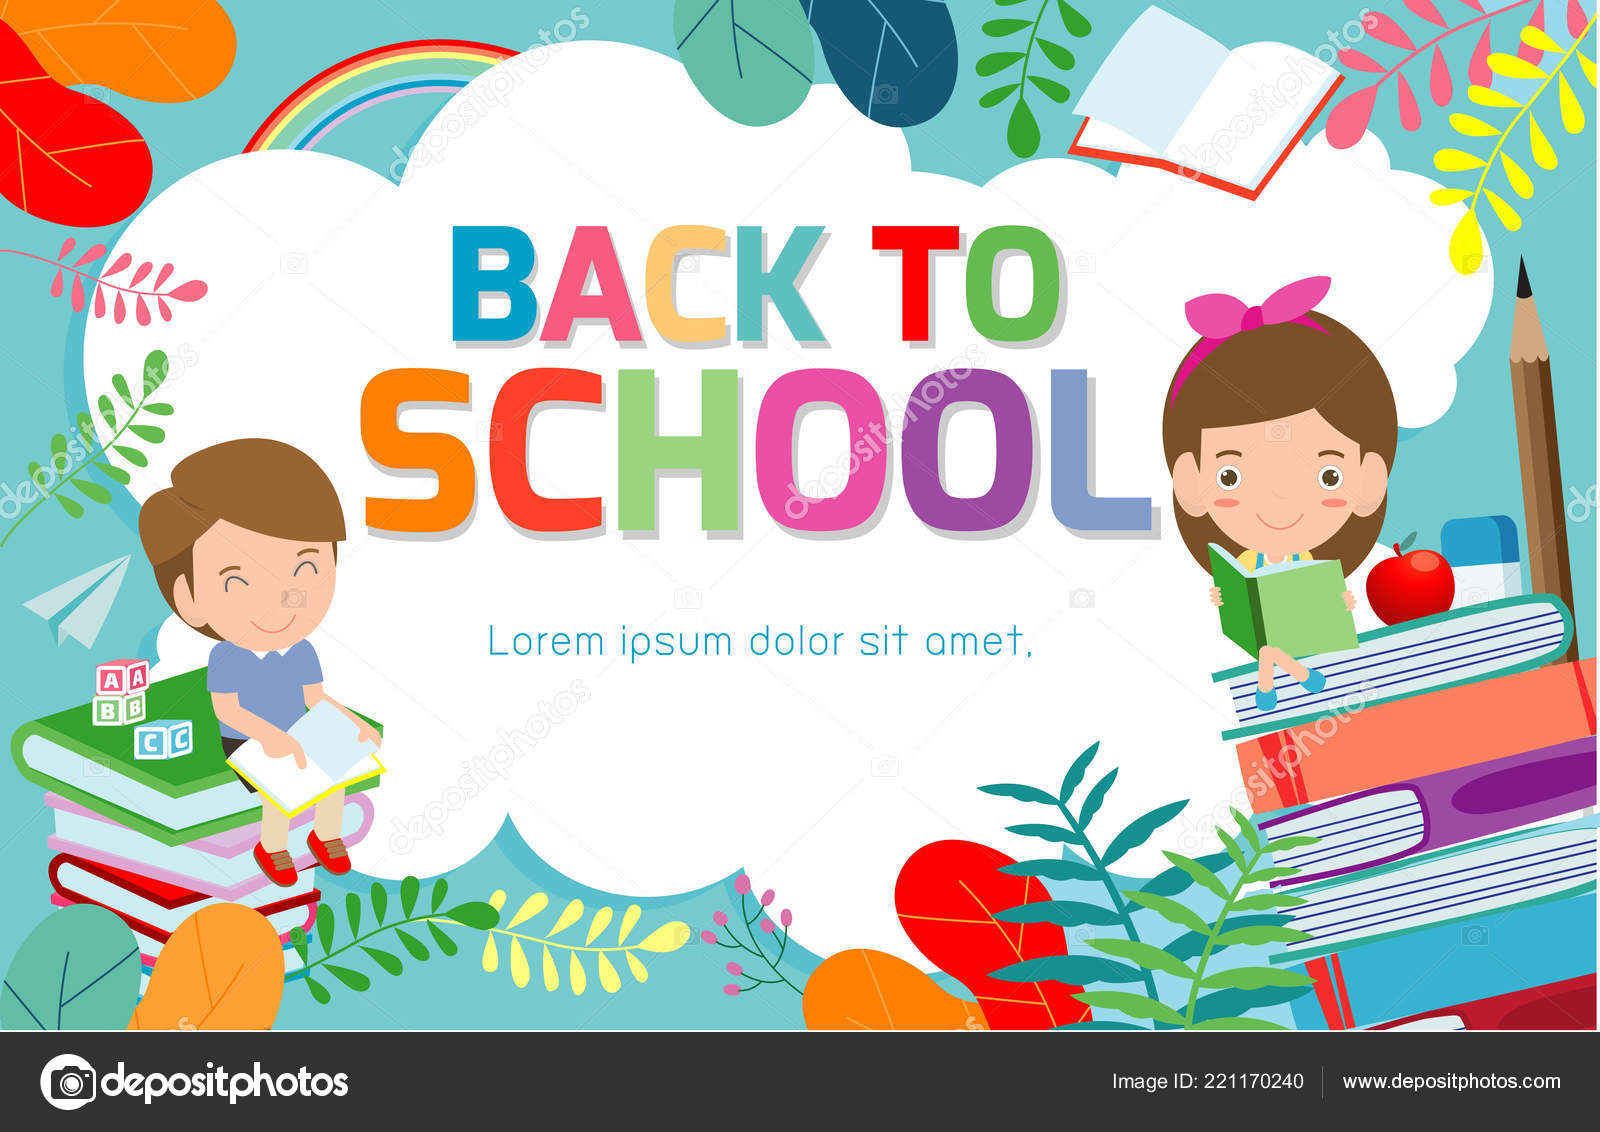 Back School Banner Background Welcome Back School Children Reading Book Stock Vector C Phanuchat10700 Gmail Com 221170240